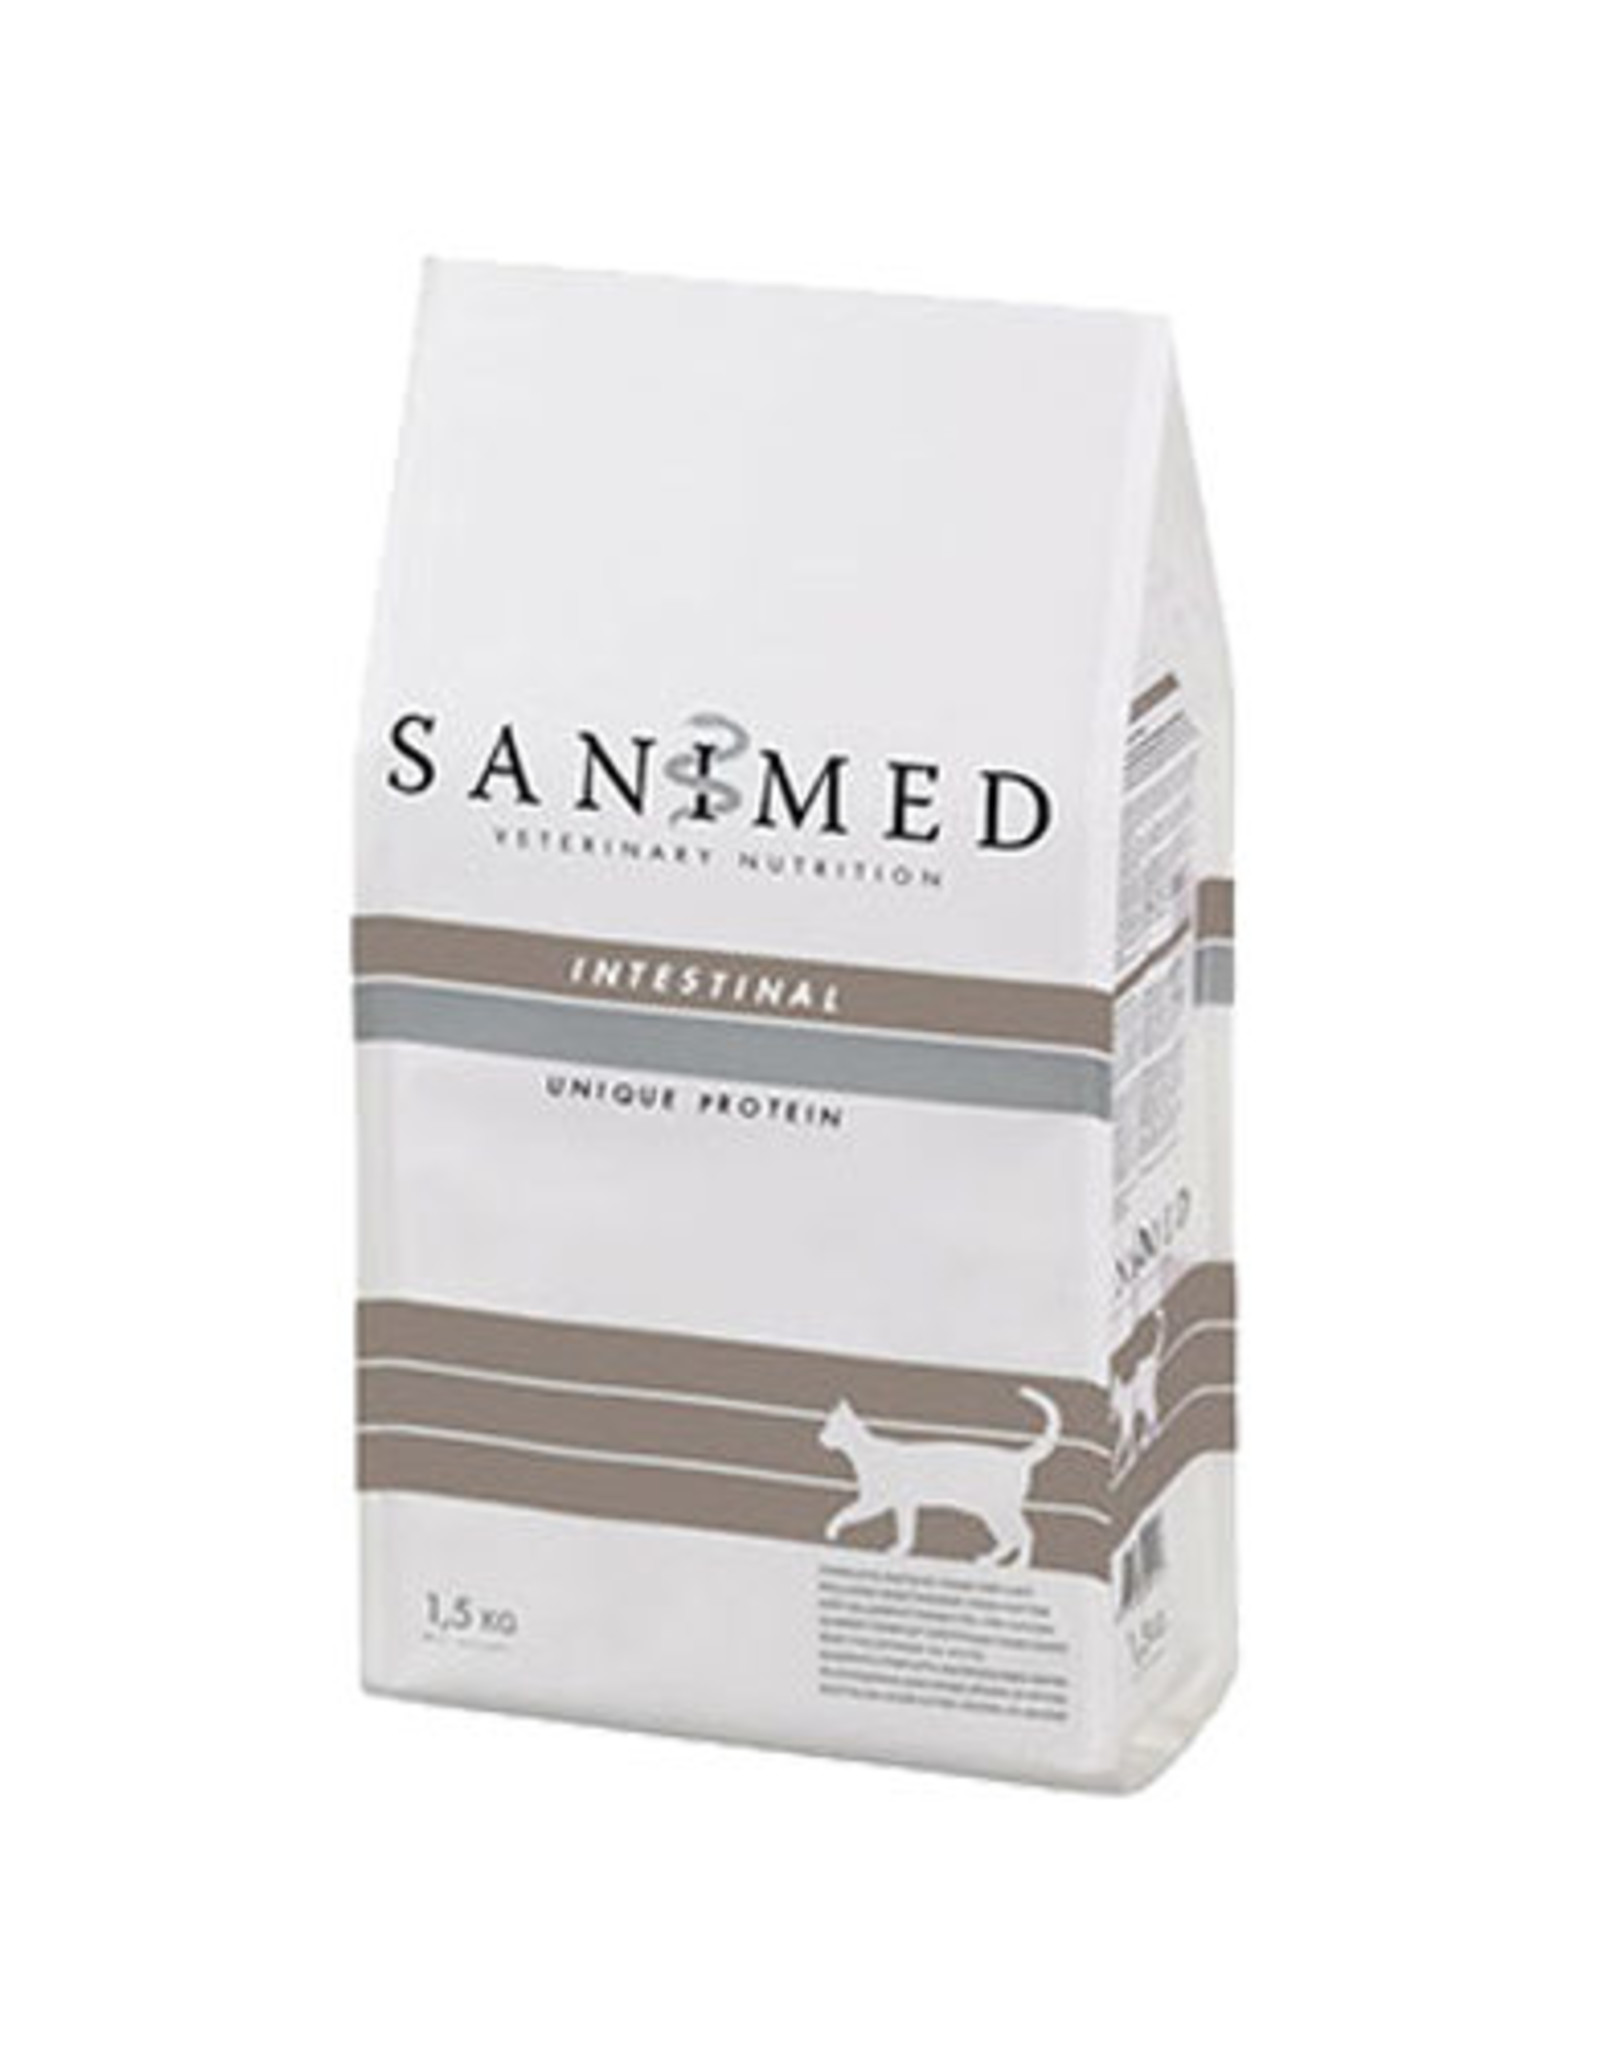 Sanimed Sanimed Feline Intestinal With Insect Chat 1.5kg